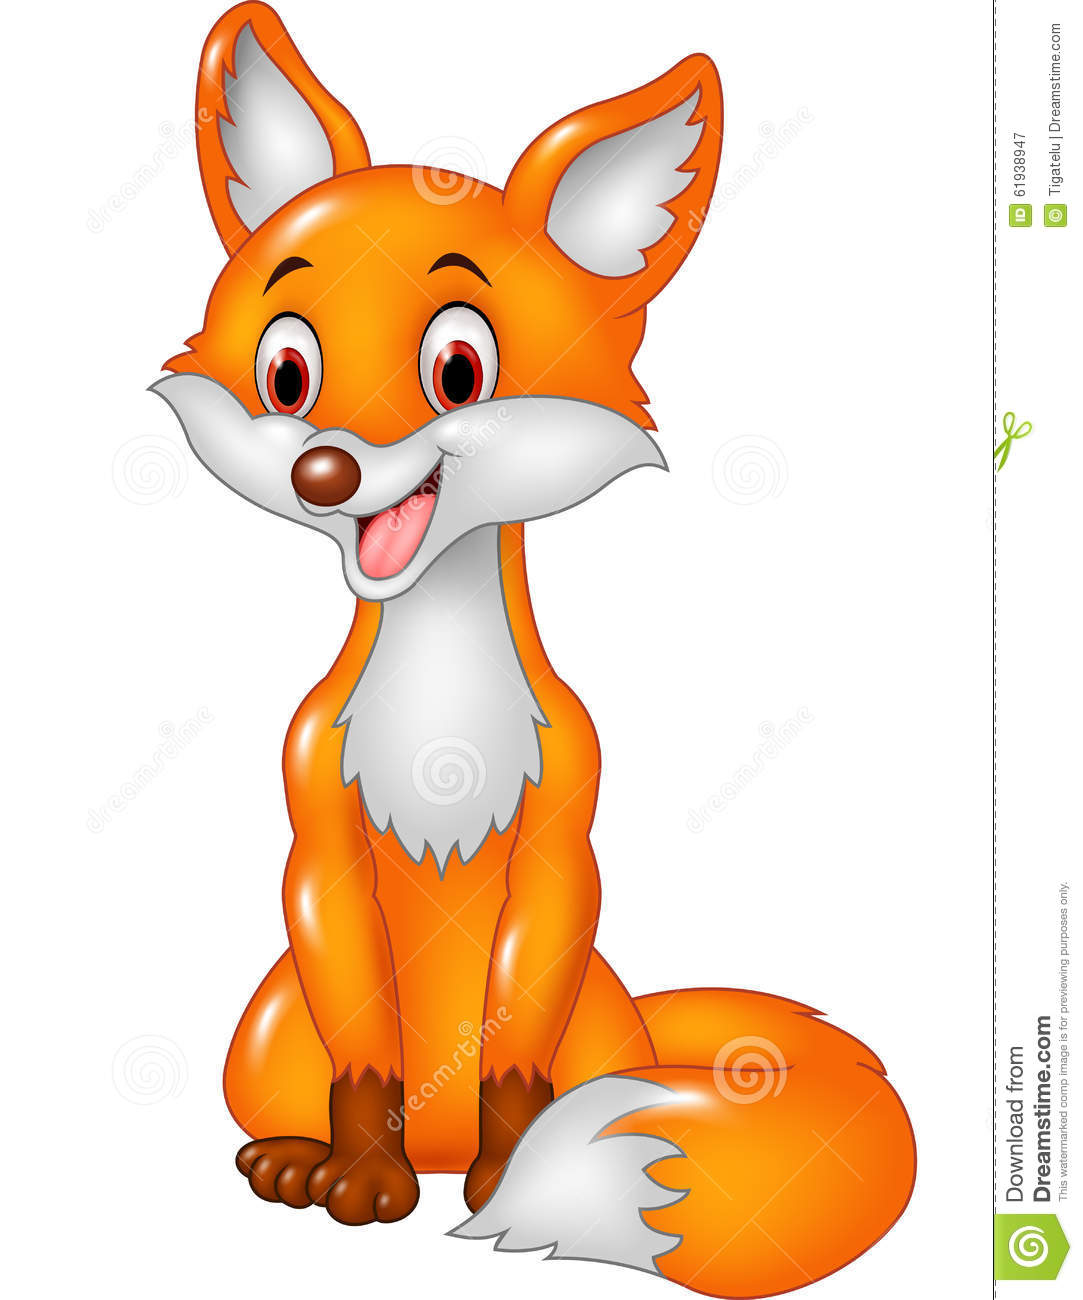 Illustration of Cartoon smiley fox sitting on white background.